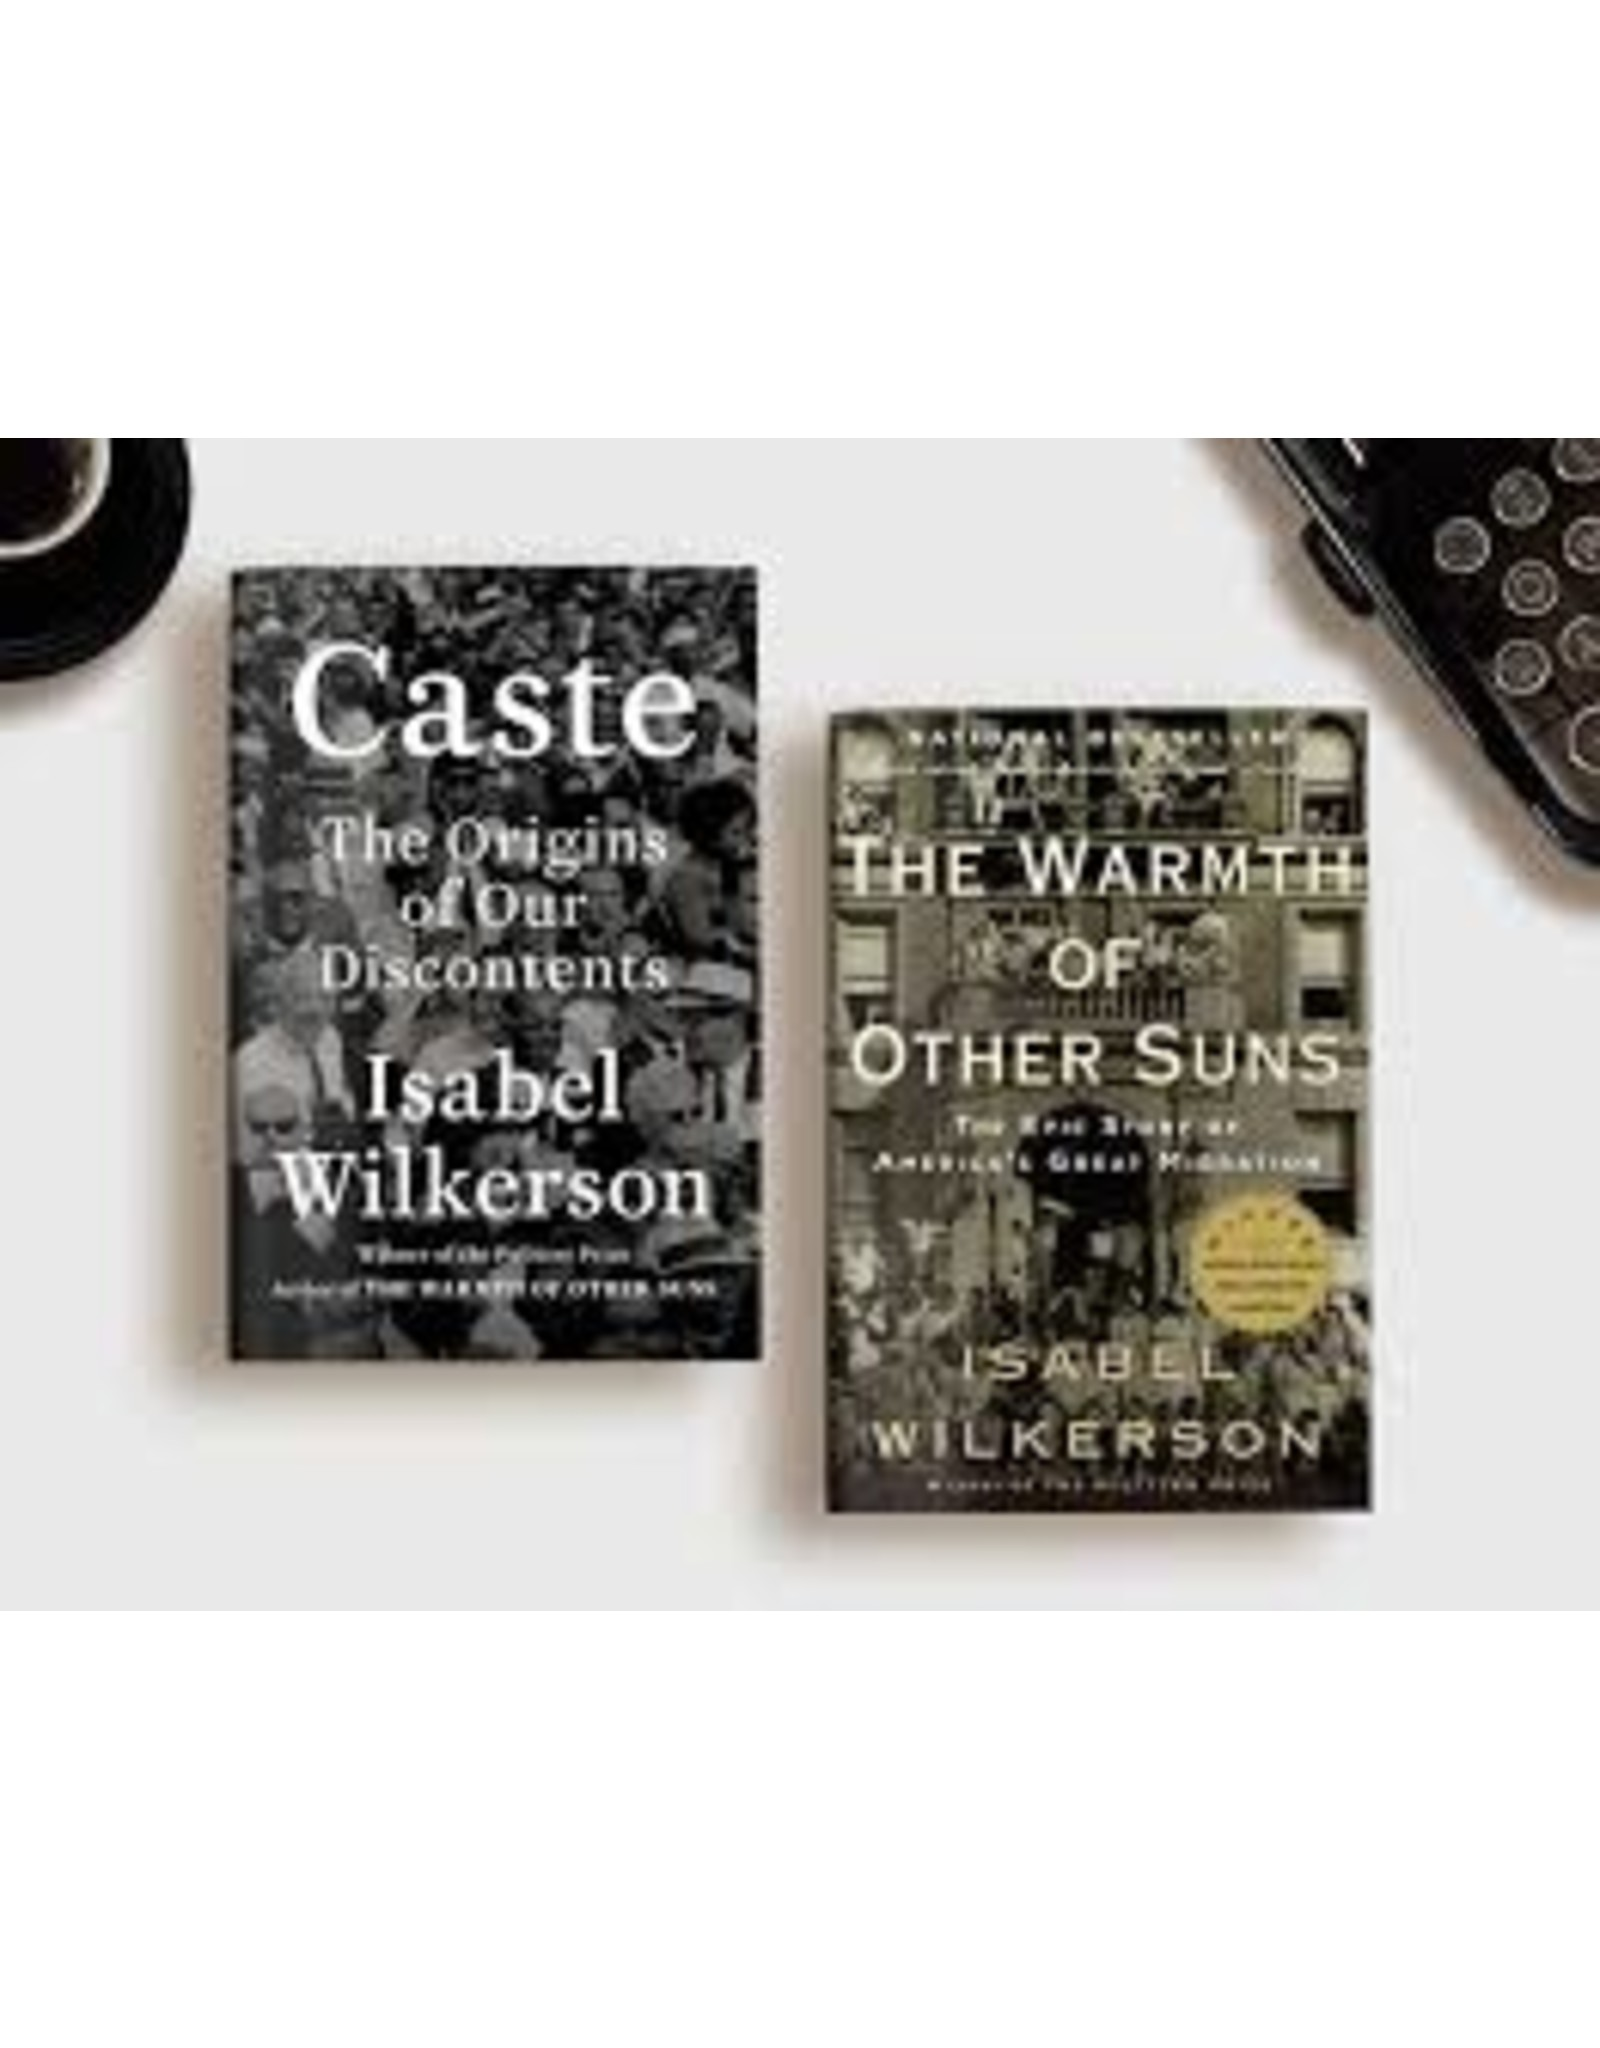 Books Caste: The Origins of Our Discontents by Isabel Wilkerson